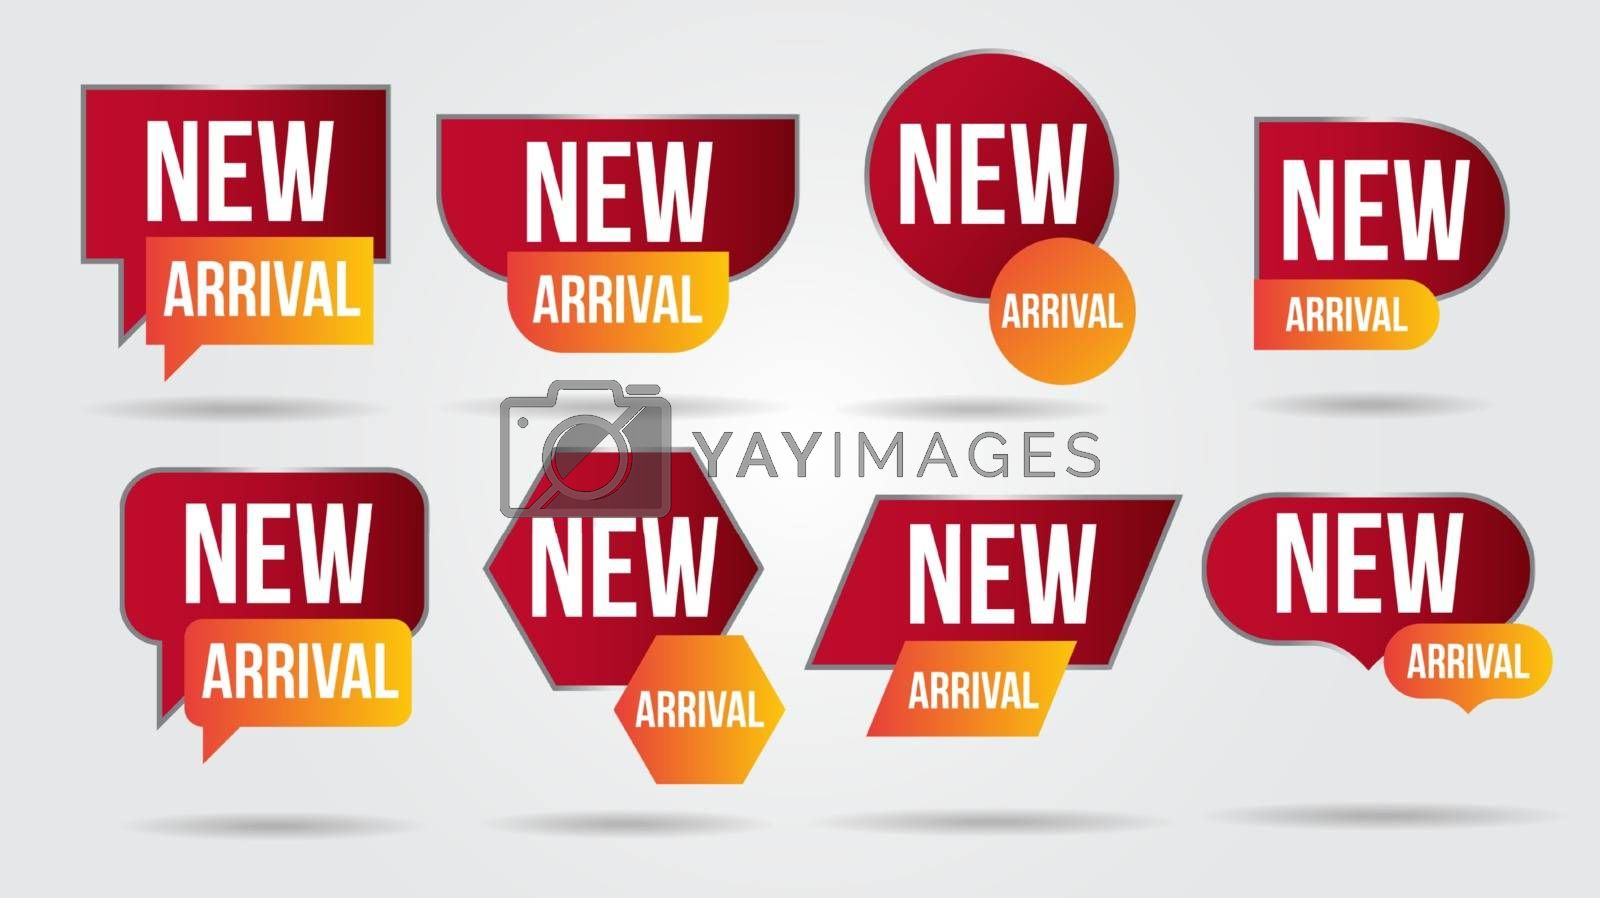 New arrival vector illustration collection labels shop products.Red promotion labels for arrivals shop section.Posters and banners sticker icons templates.